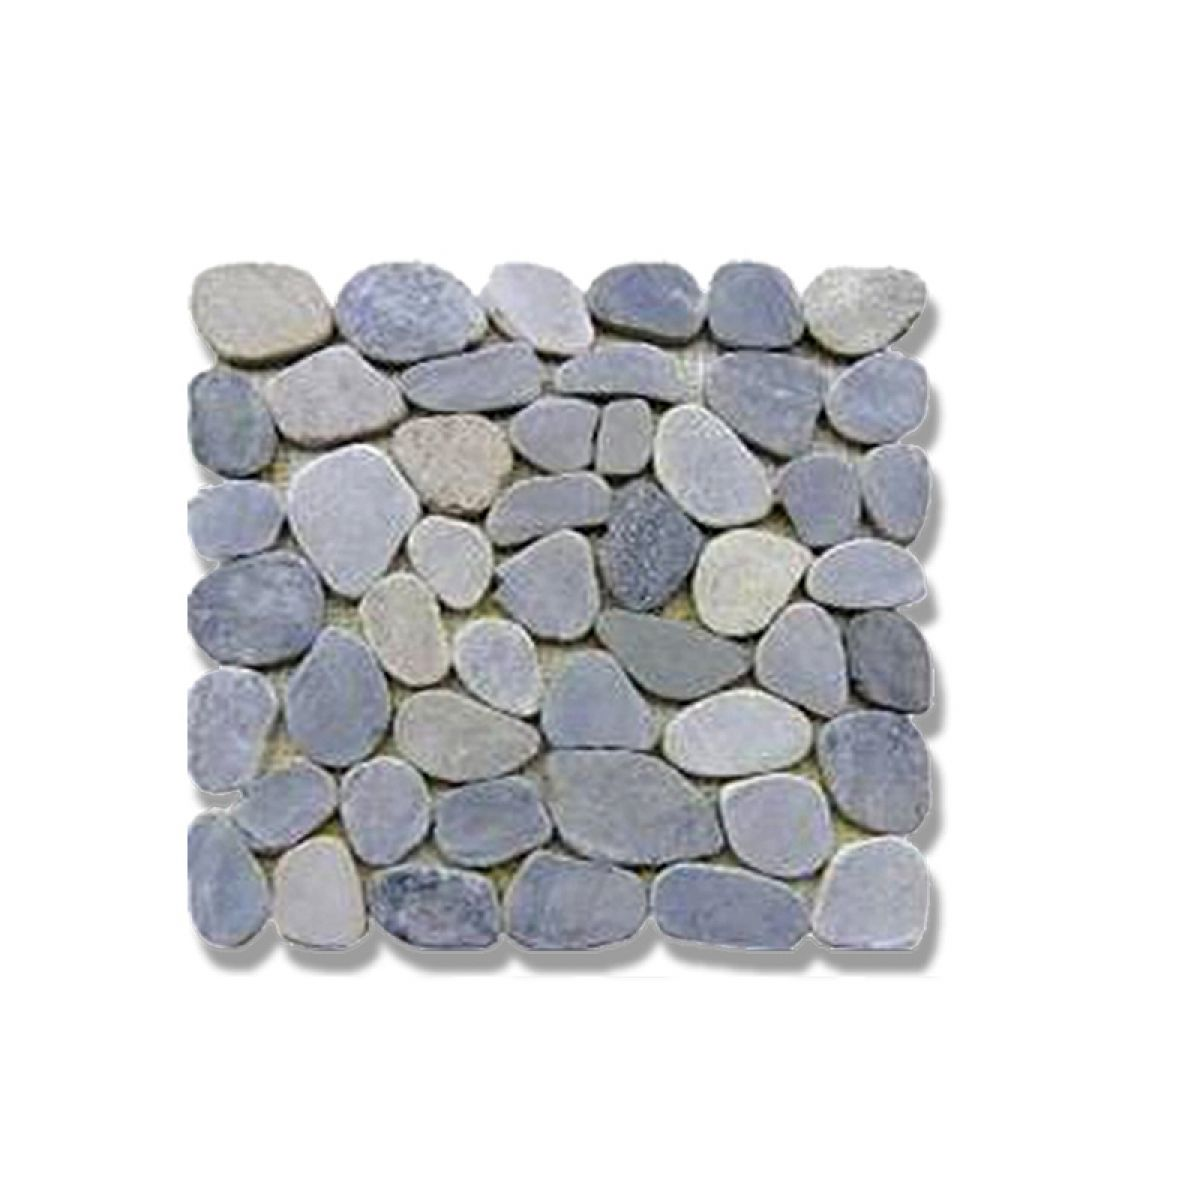 Abacus Natural Stone Pebble Tile 30 5 X 5cm